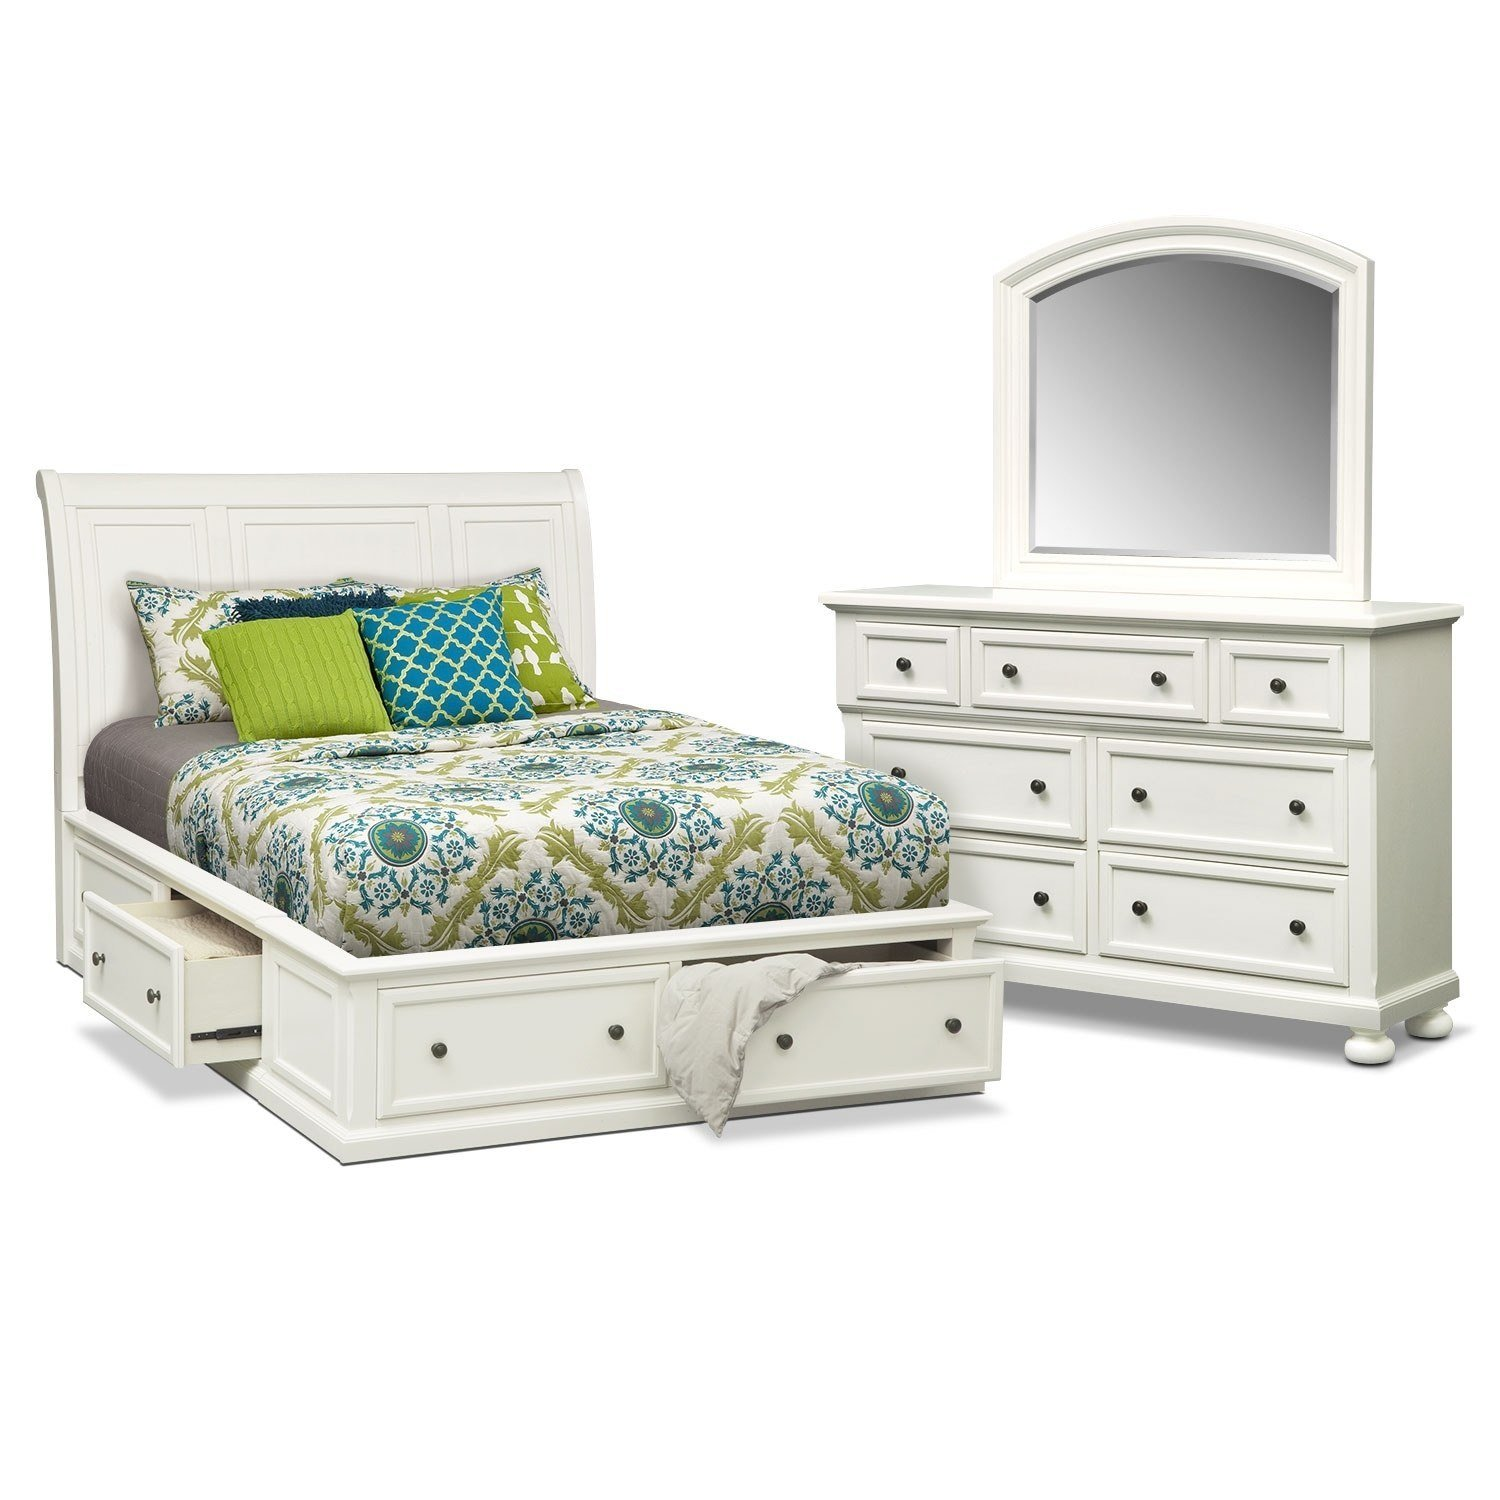 Best Hanover White Queen Storage Bed Value City Furniture With Pictures